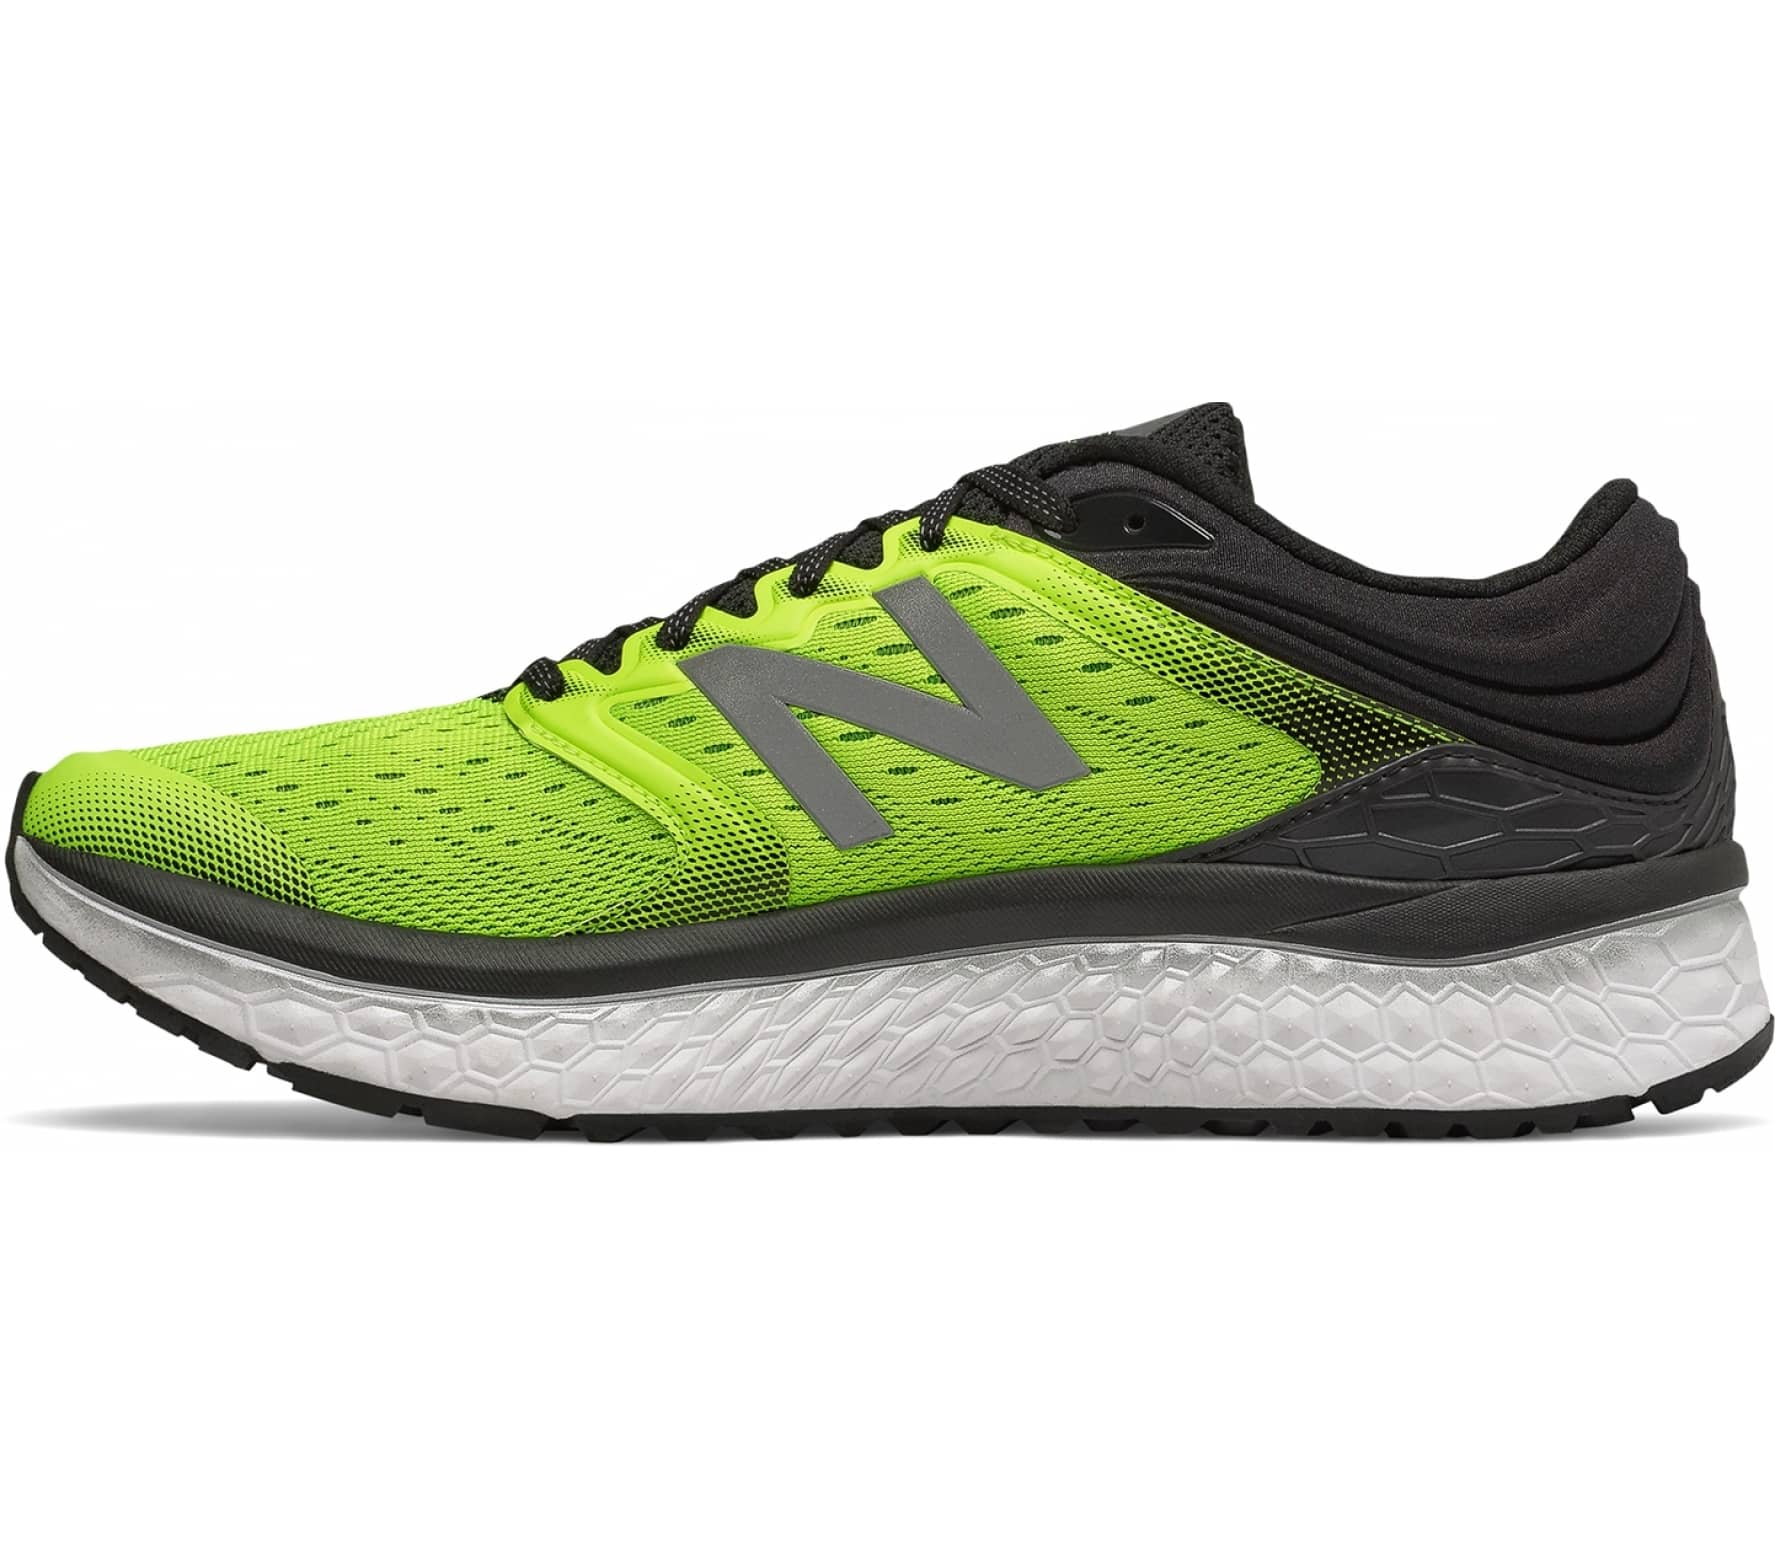 New Balance 1080 v8 Men yellow